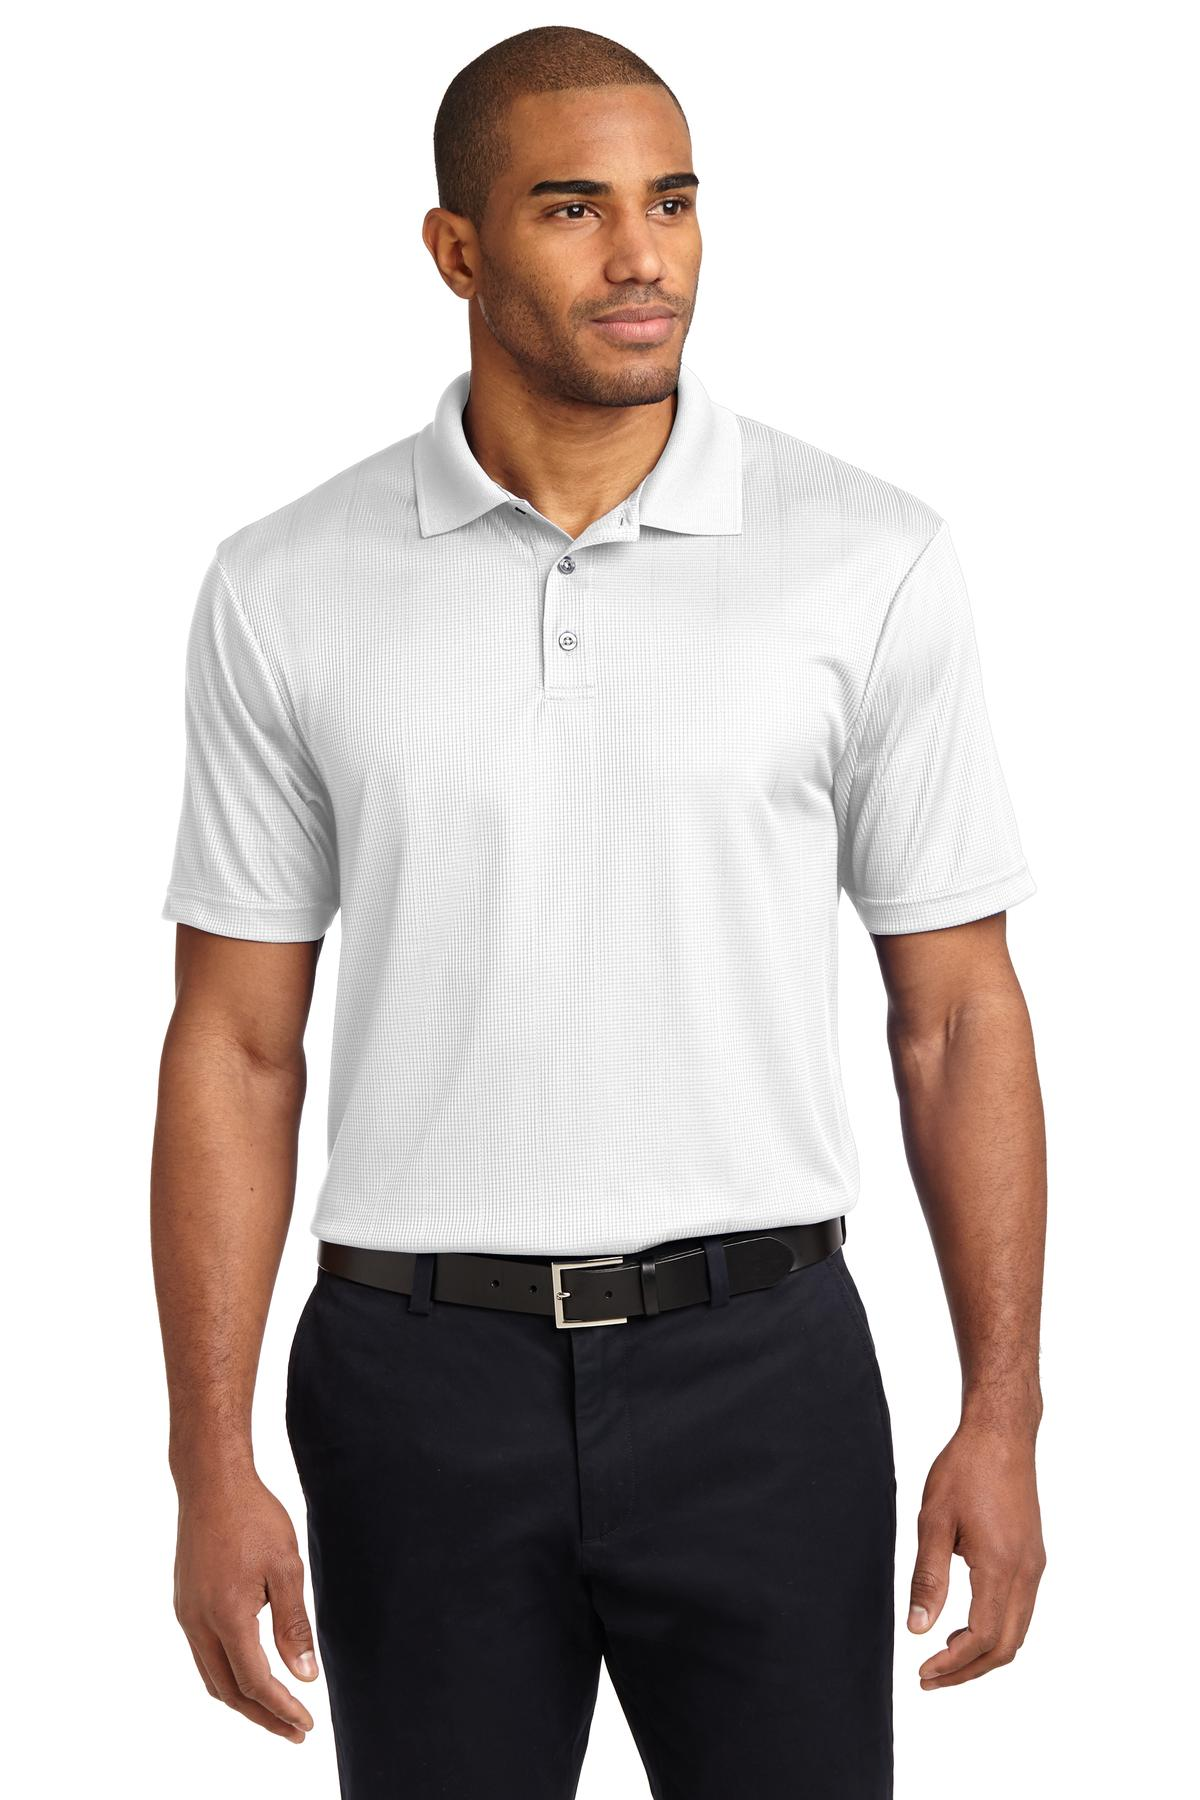 Neon Orange Port Authority Silk Touch Performance Polo.